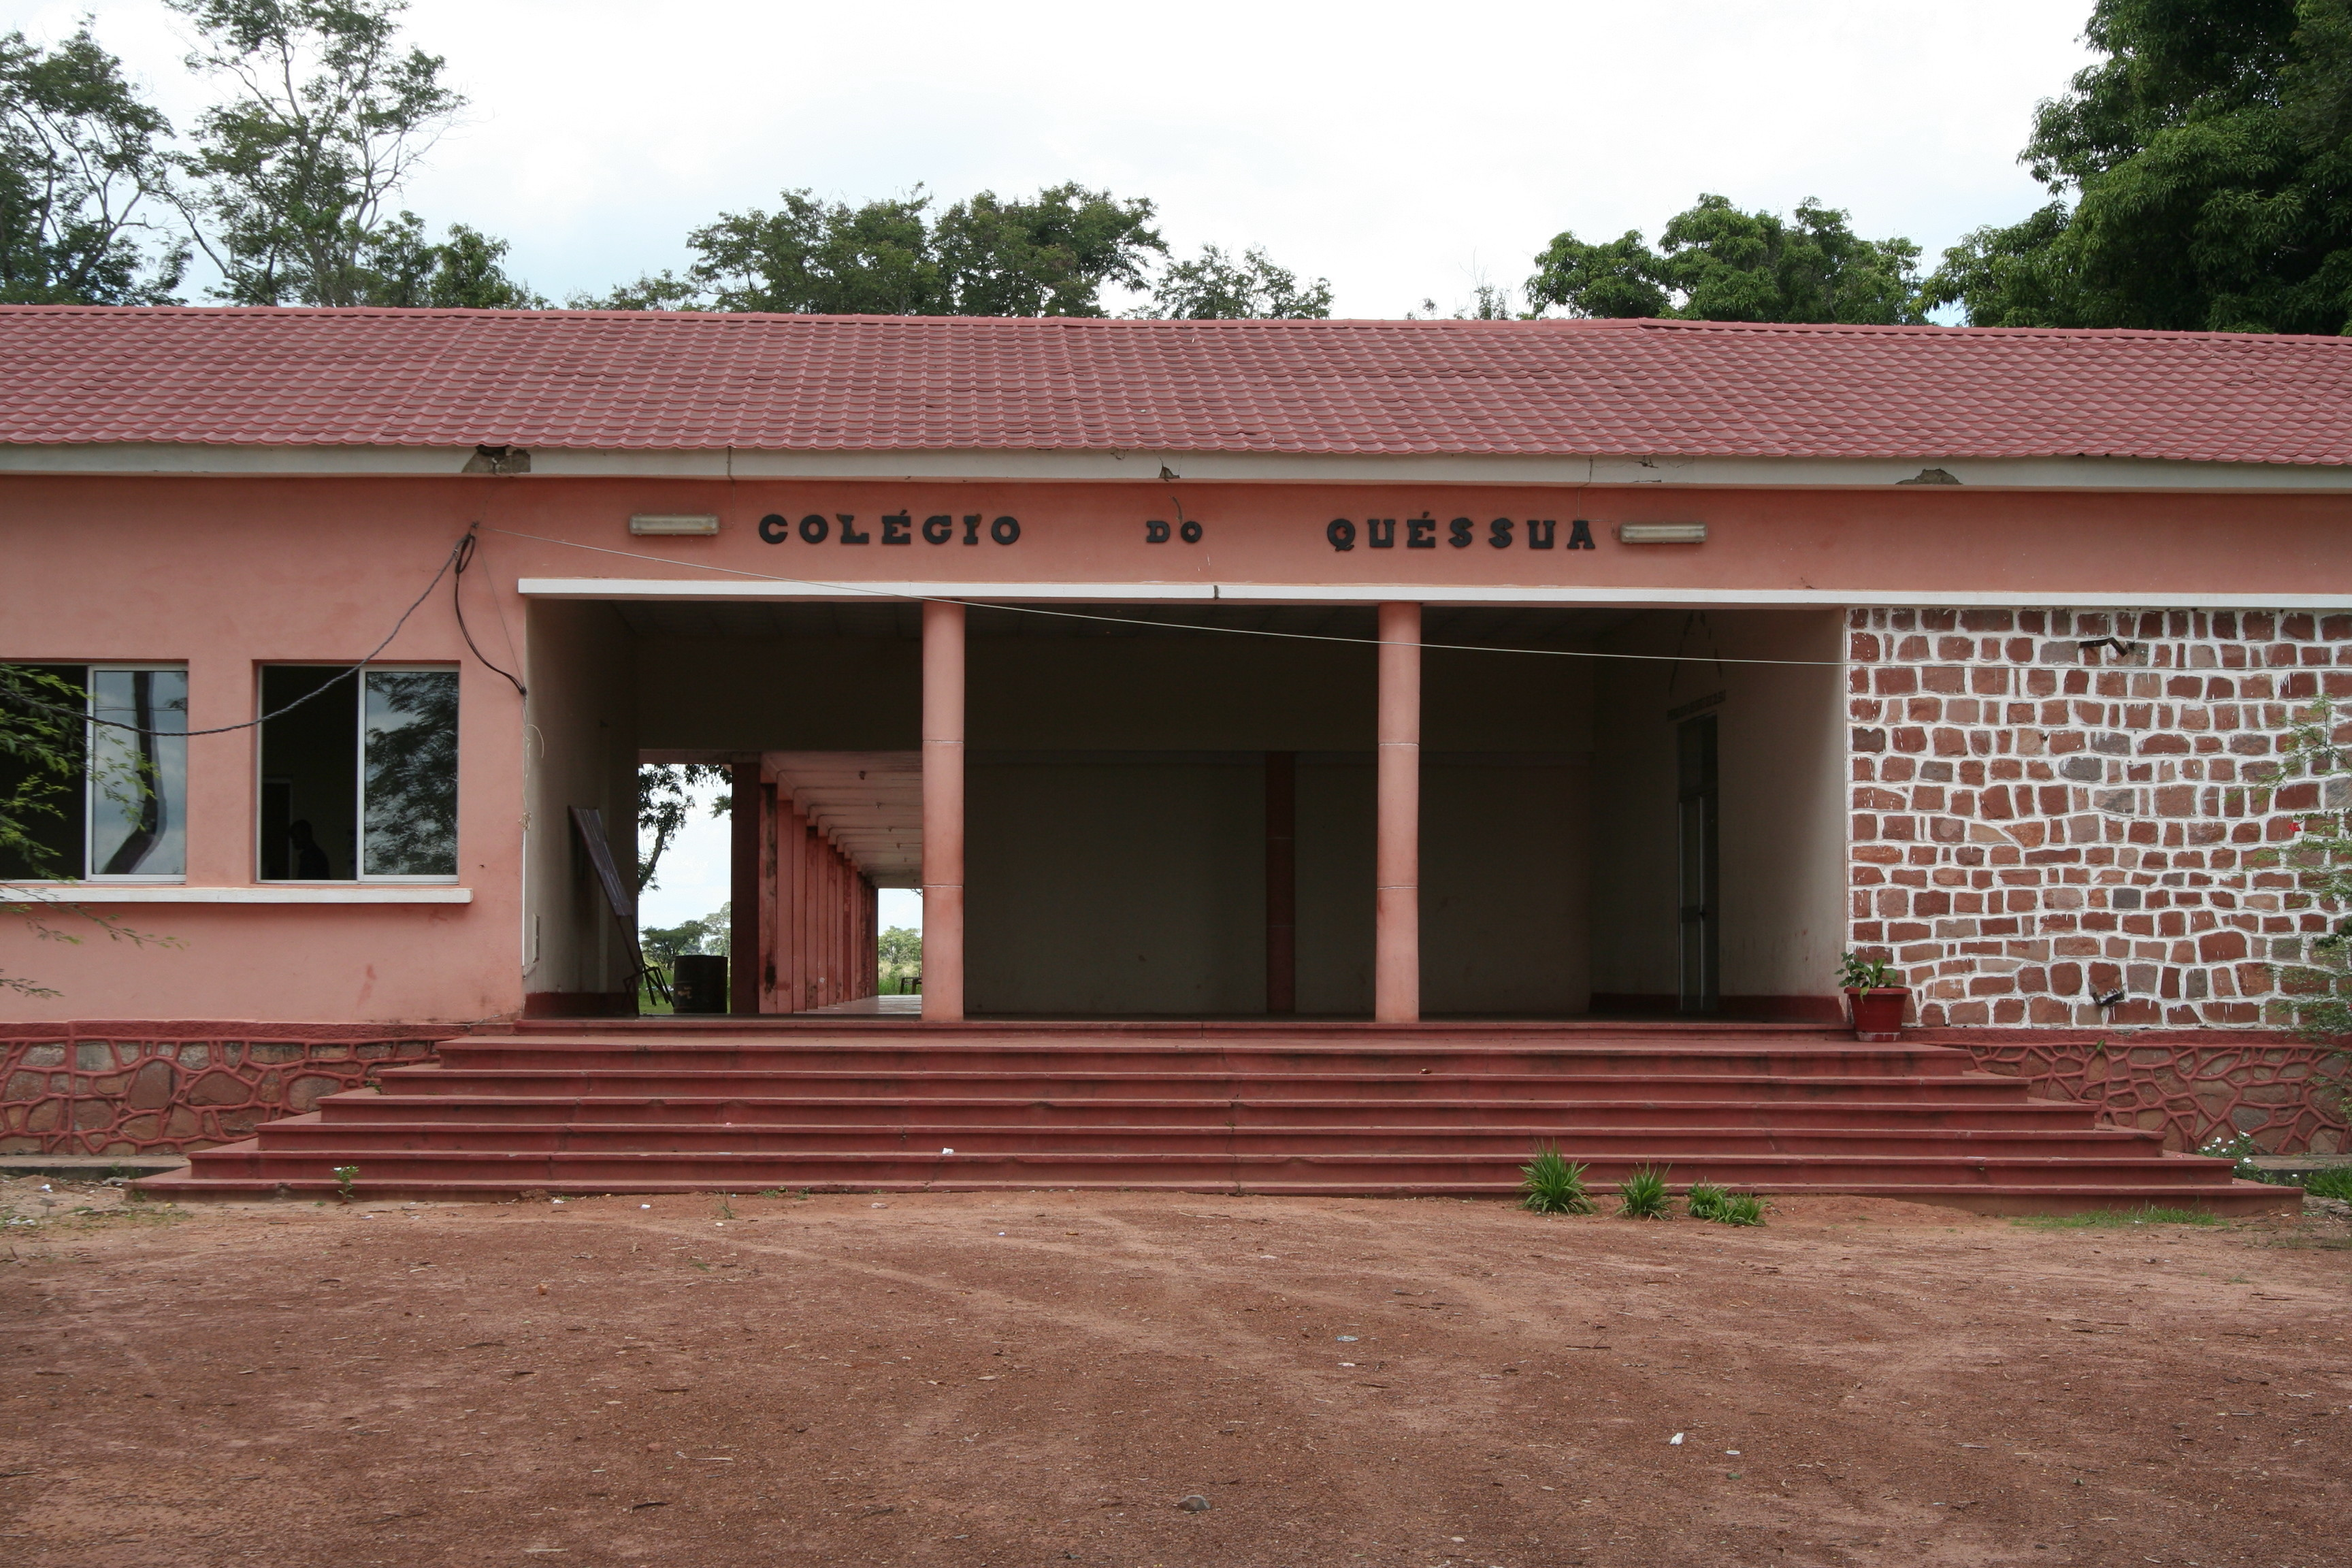 Quessua High School rebuilt